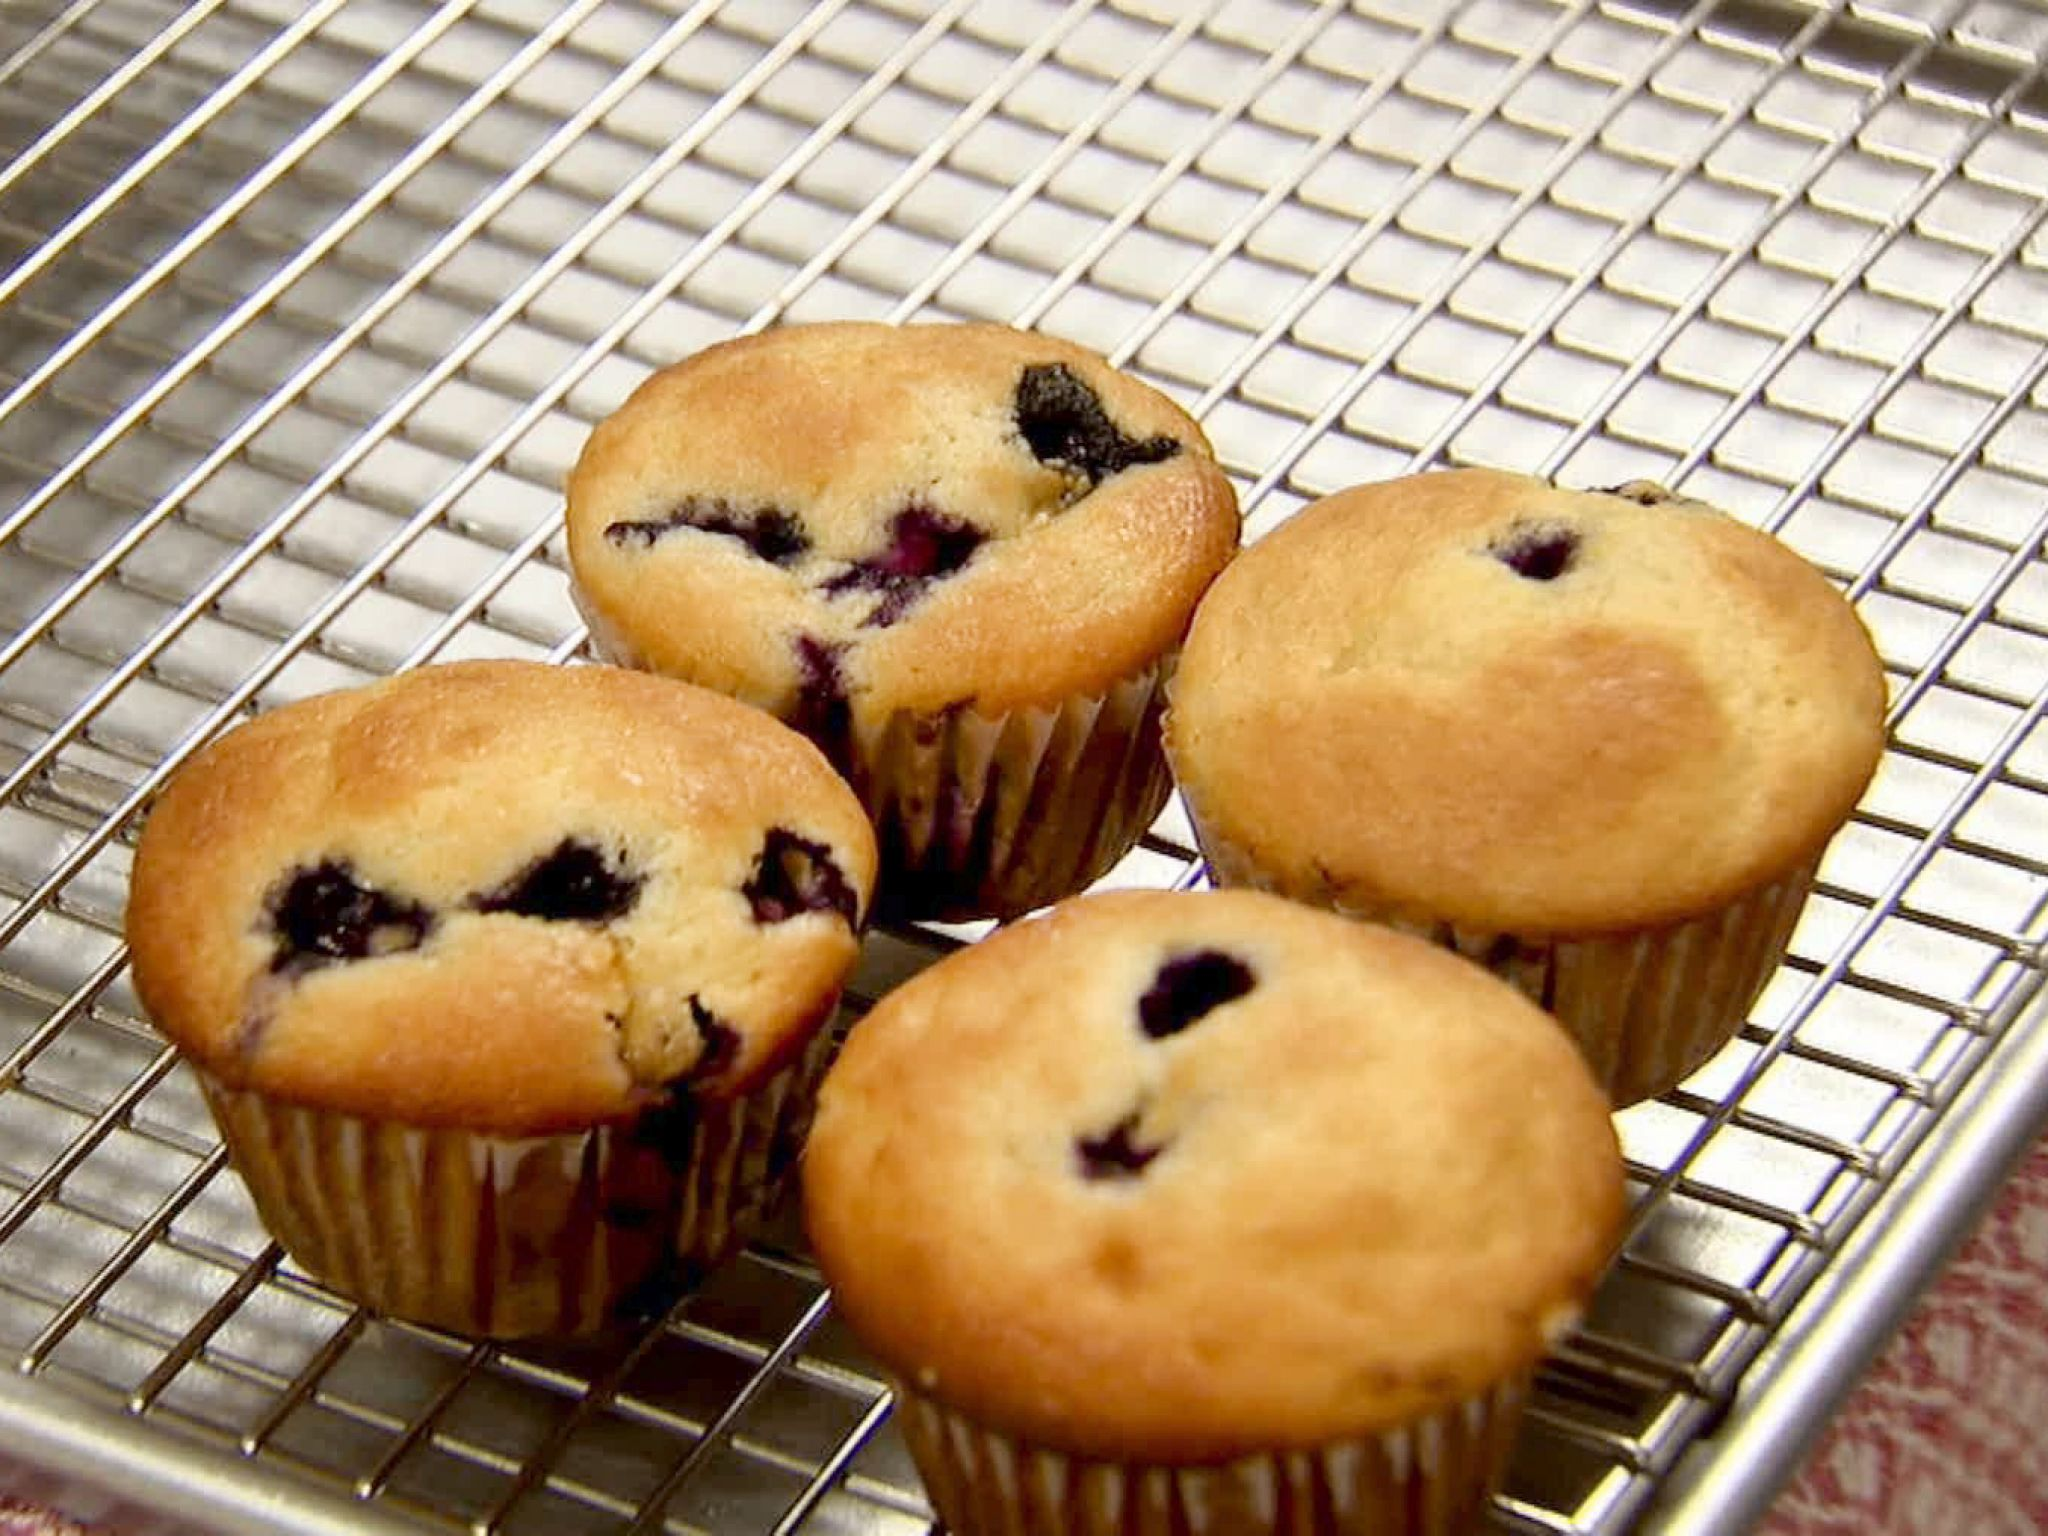 Photo Collection: KKM.14 Blueberry Muffin, June 30, 2015